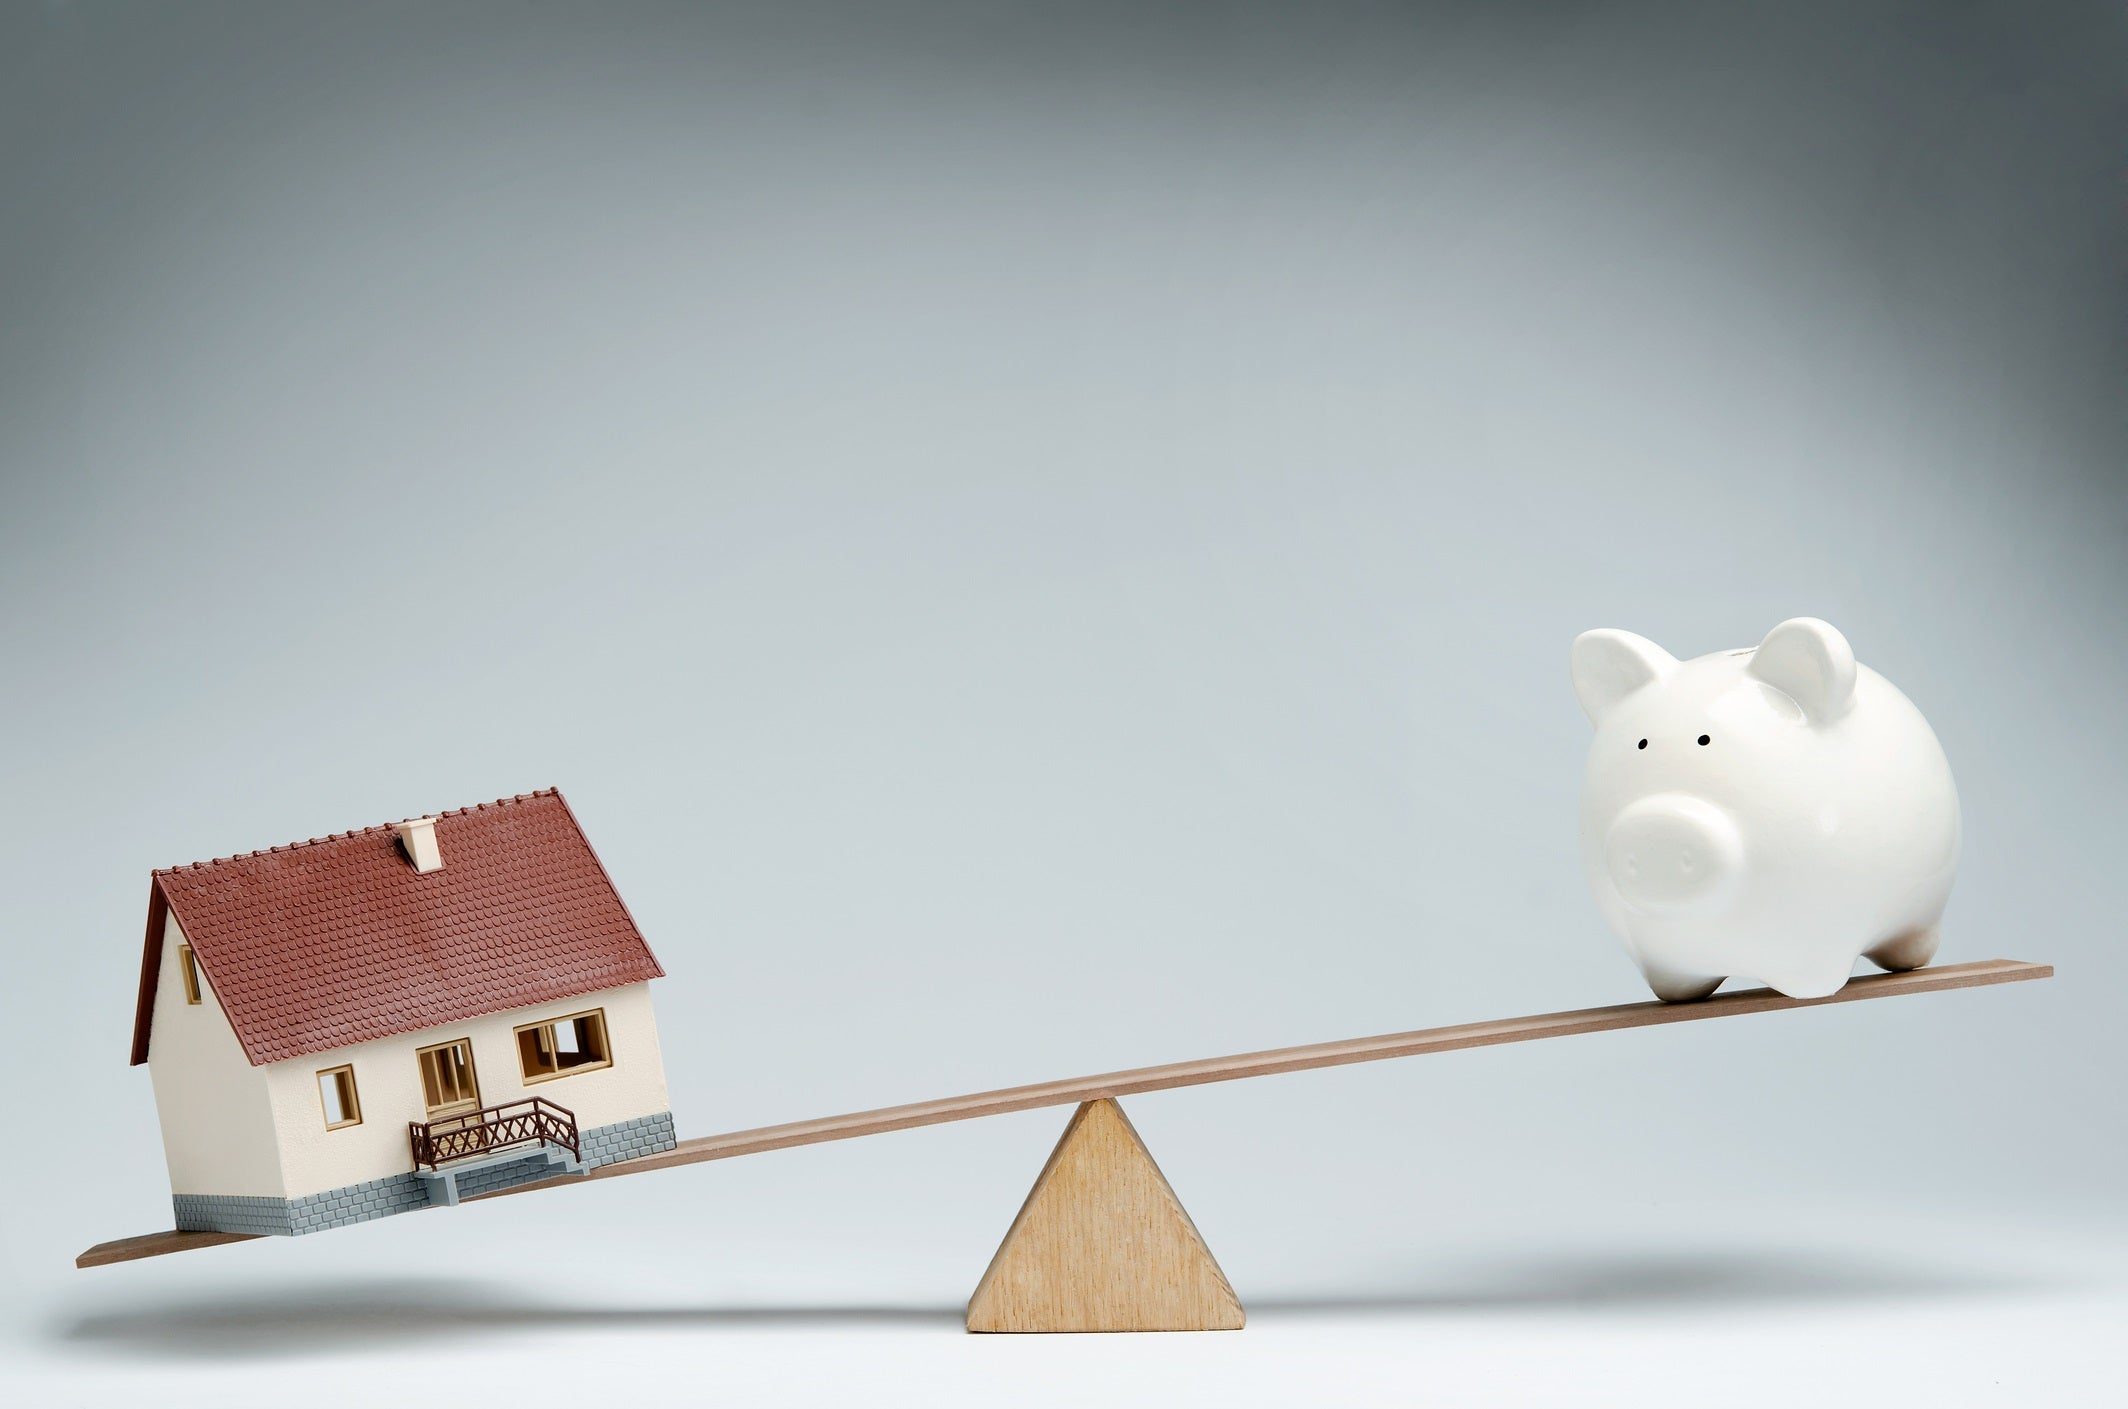 5 Decisions That Matter Far More Than Buying a House | The Motley Fool